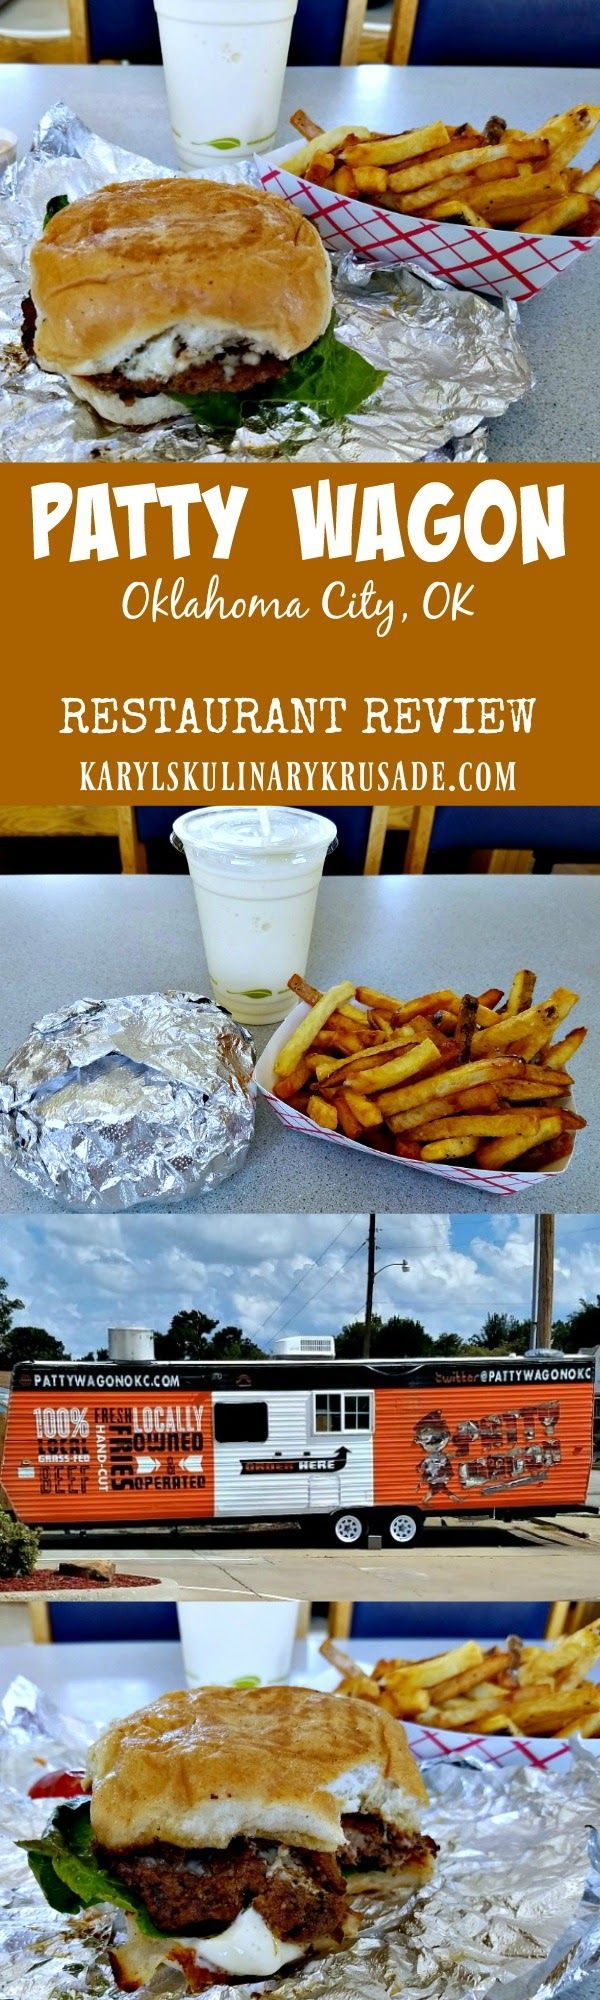 Patty Wagon Restaurant Review by Karyl's Kulinary Krusade